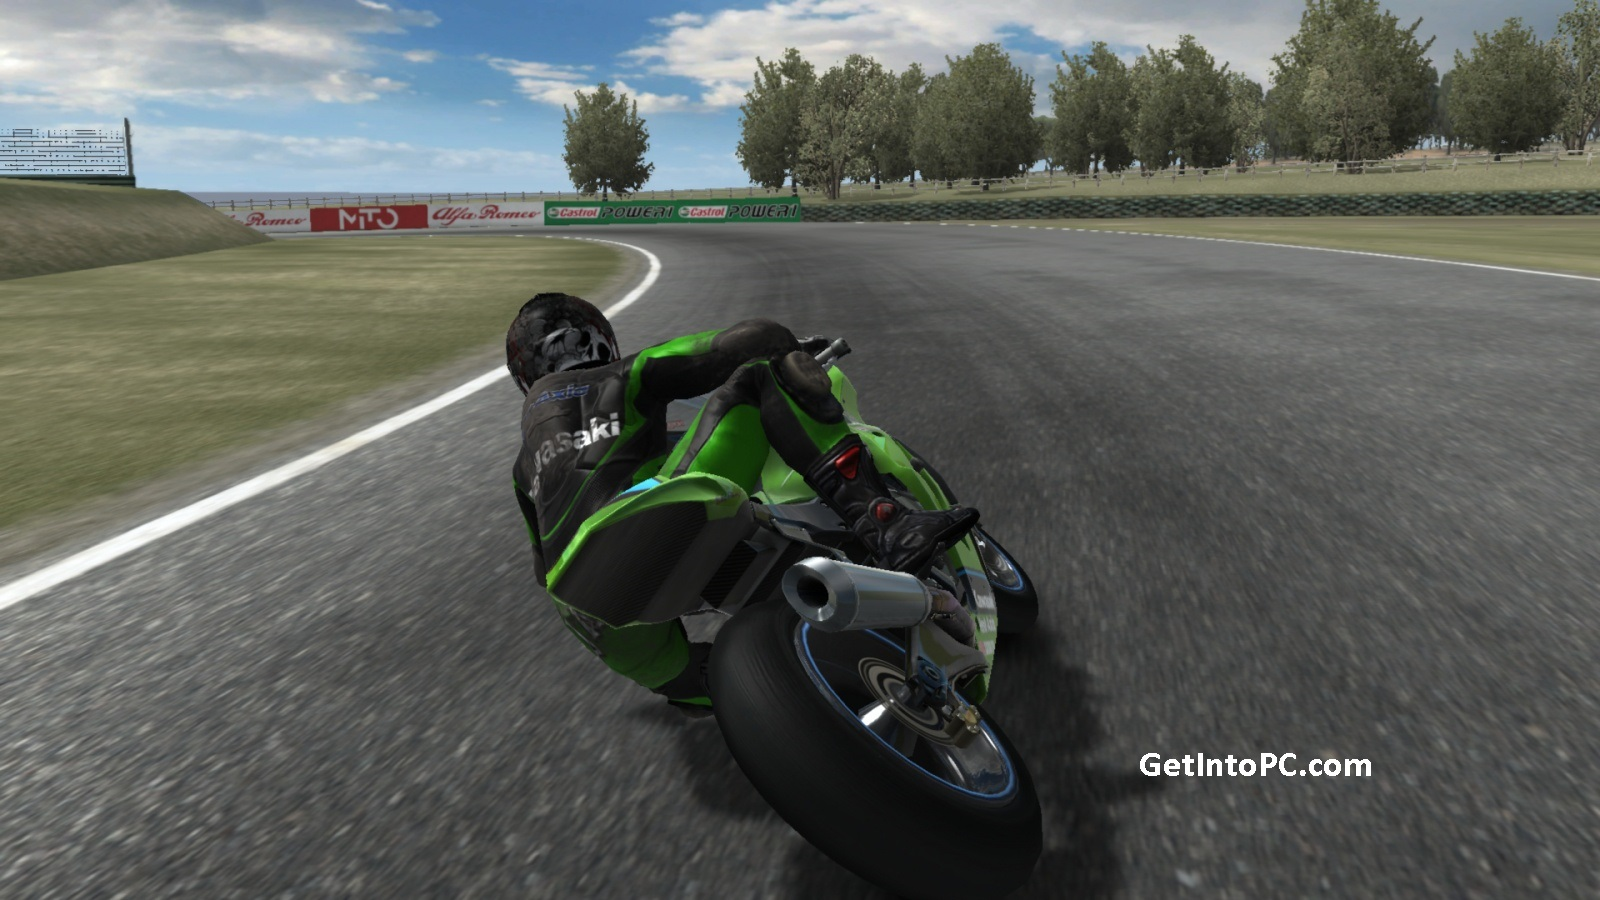 Download Bike Racing Games This Bike racing game has